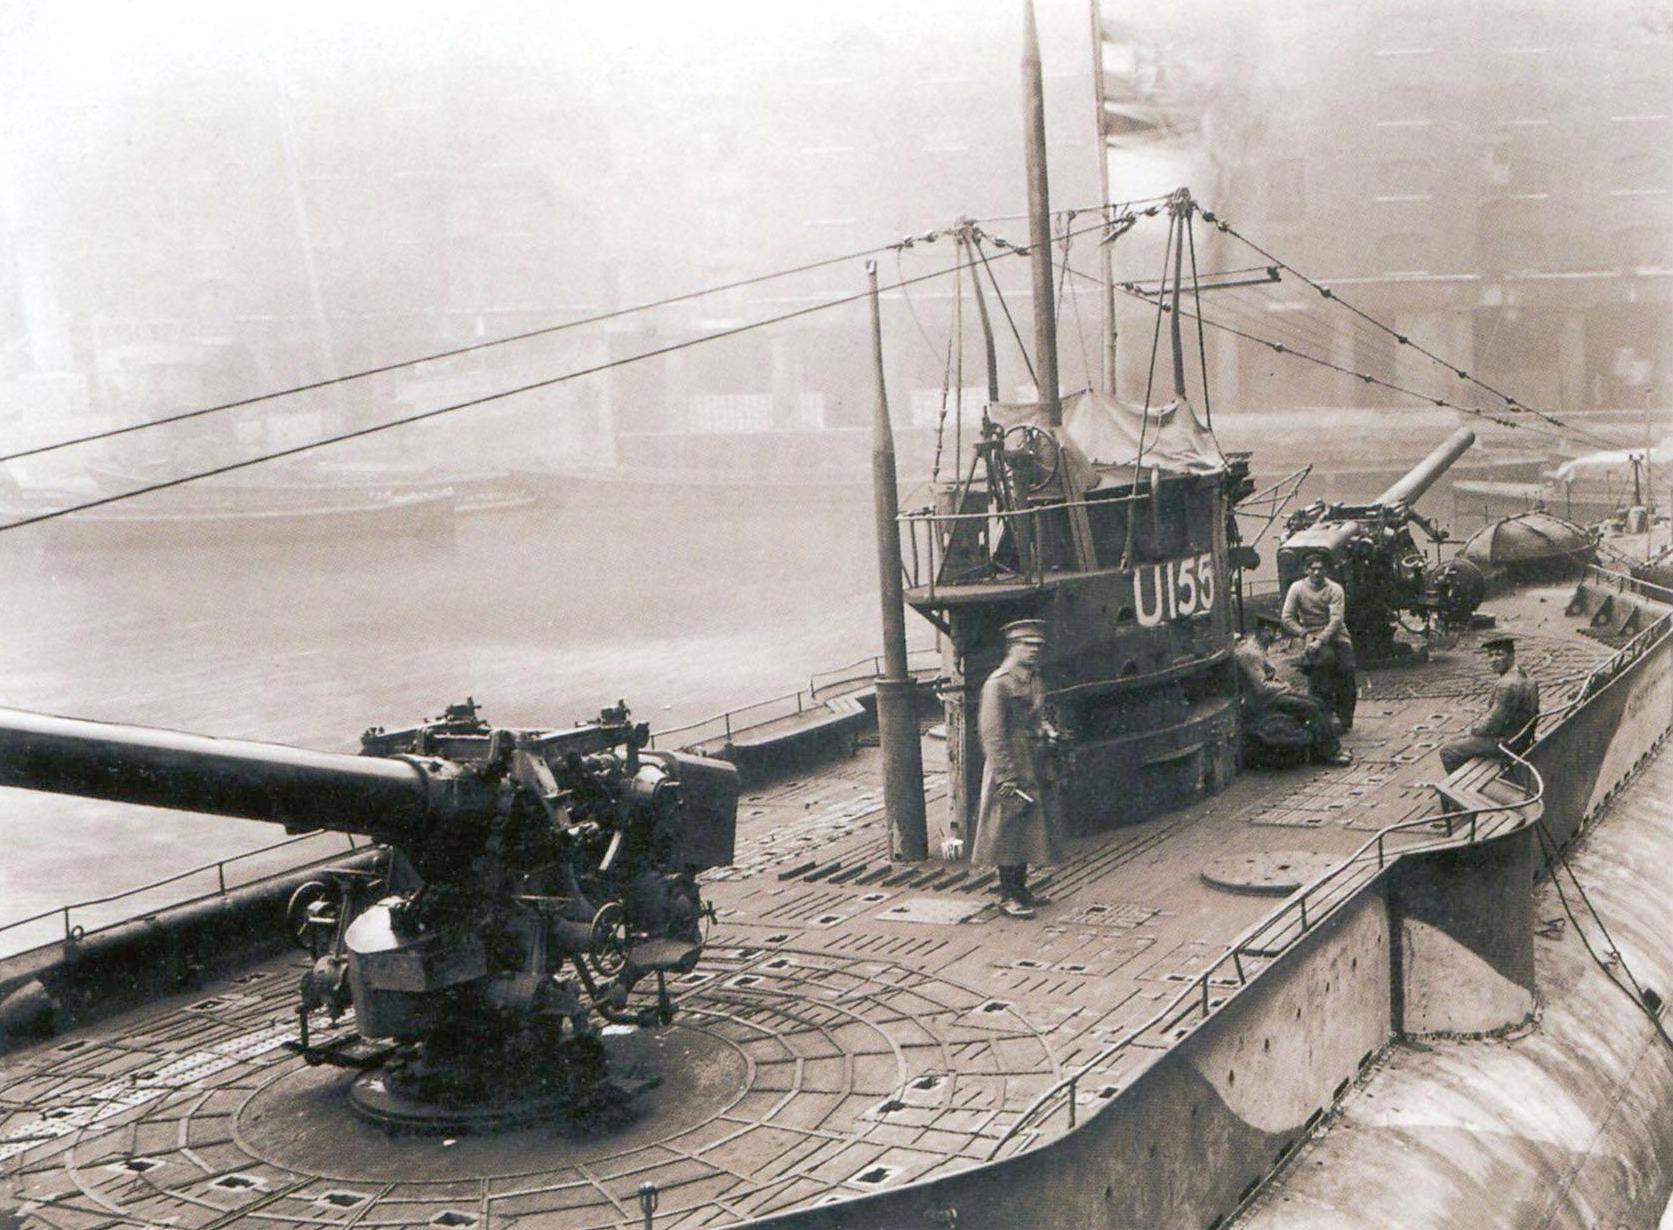 Two 150-mm guns on the deck of submarine U-155